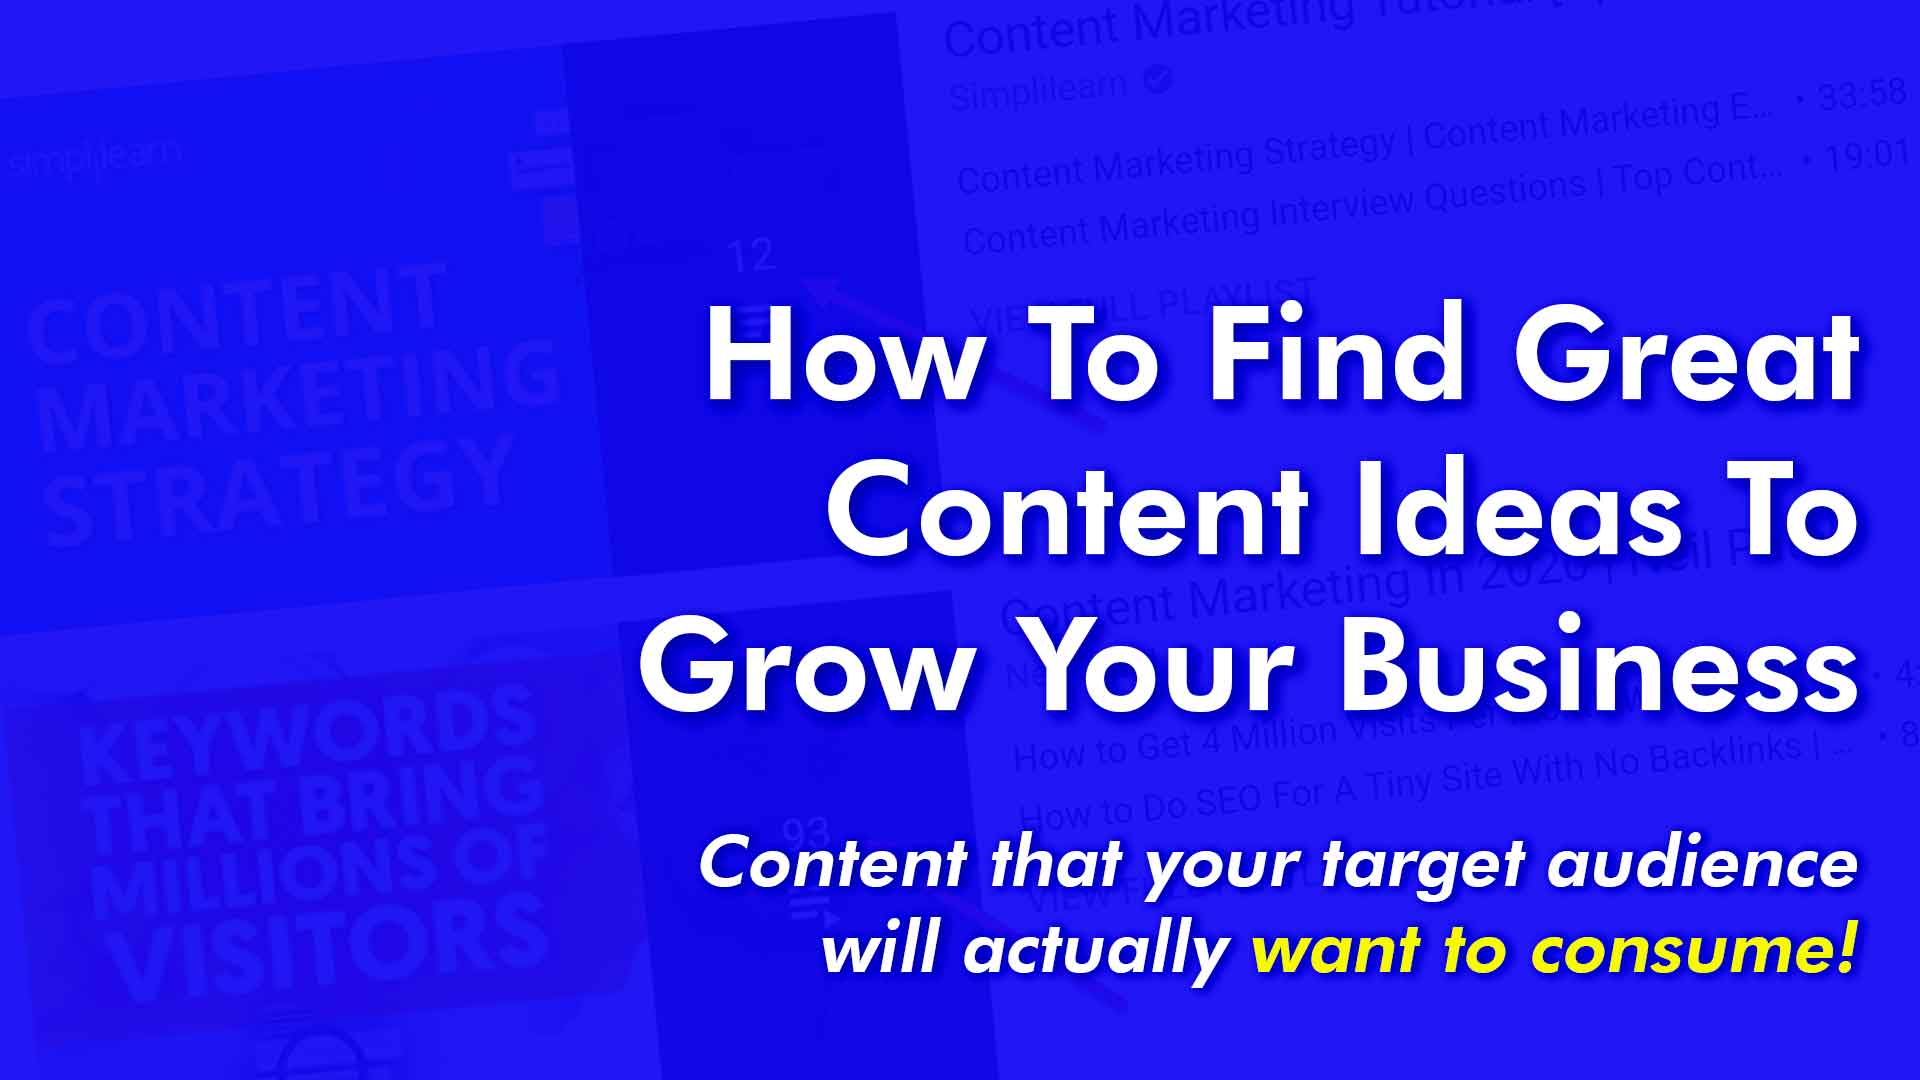 How To Find Great Content Ideas To Grow Your Business